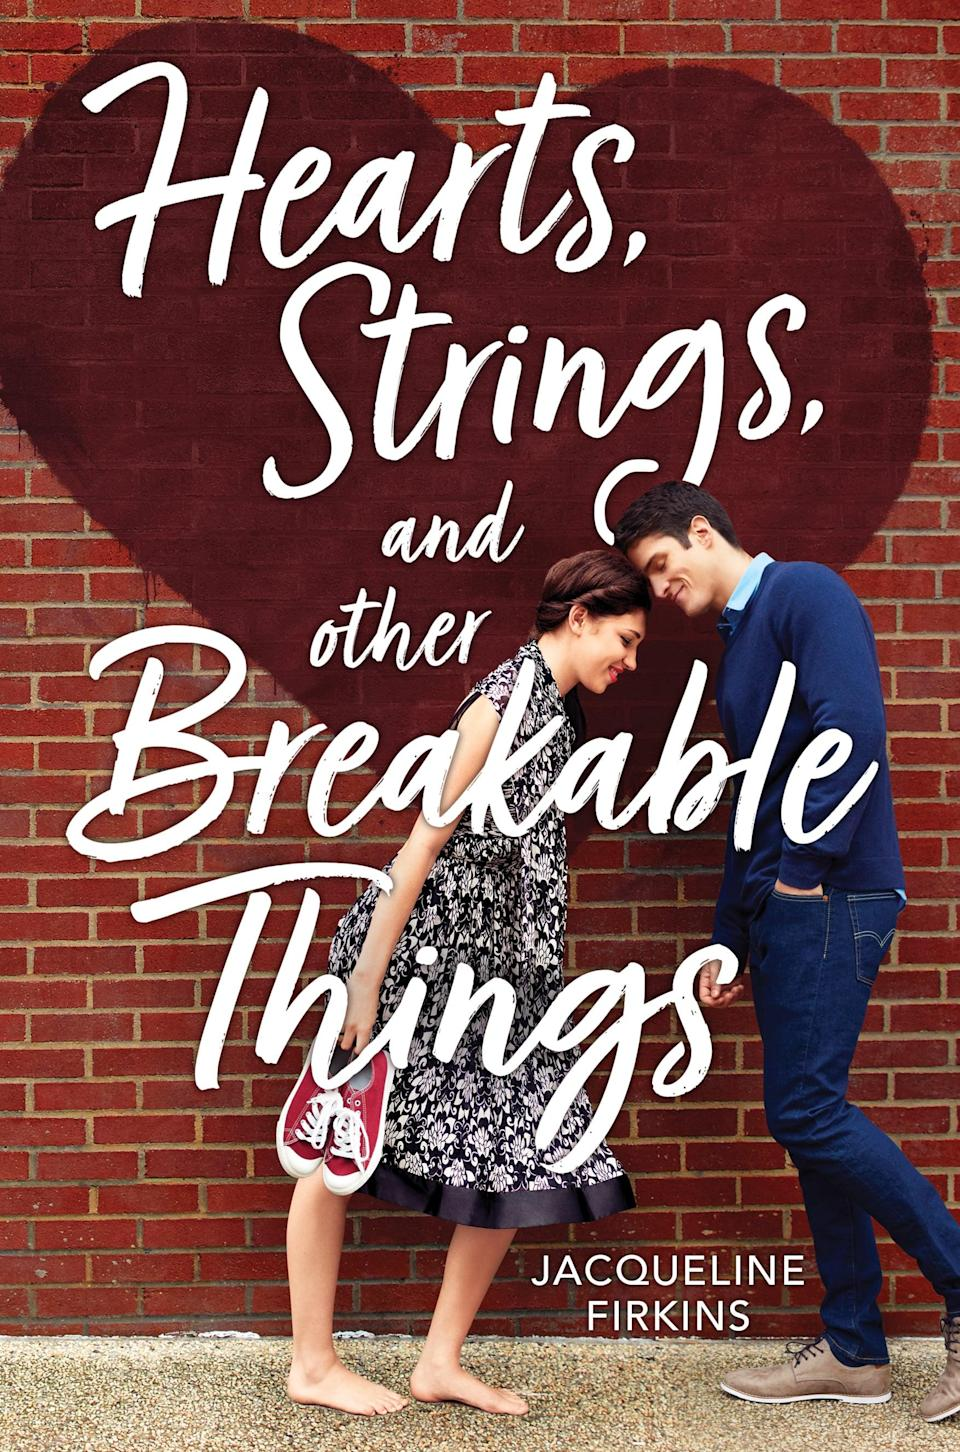 <p>In <strong><span>Hearts, Strings, and Other Breakable Things</span></strong>, Jacqueline Firkins weaves the kind of sweet, messy YA love triangle that will definitely speak to <strong>To All the Boys</strong> fans. After her mother's death, Edie visits her cousins in a wealthy New England enclave, hoping to spend time diving into college prep. Instead, she reconnects with her childhood sweetheart Sebastian (who now has a new girlfriend) and meets Henry, an irresistable bad boy, resulting in a love triangle that's straight out of Jane Austen by way of the 21st century.</p>